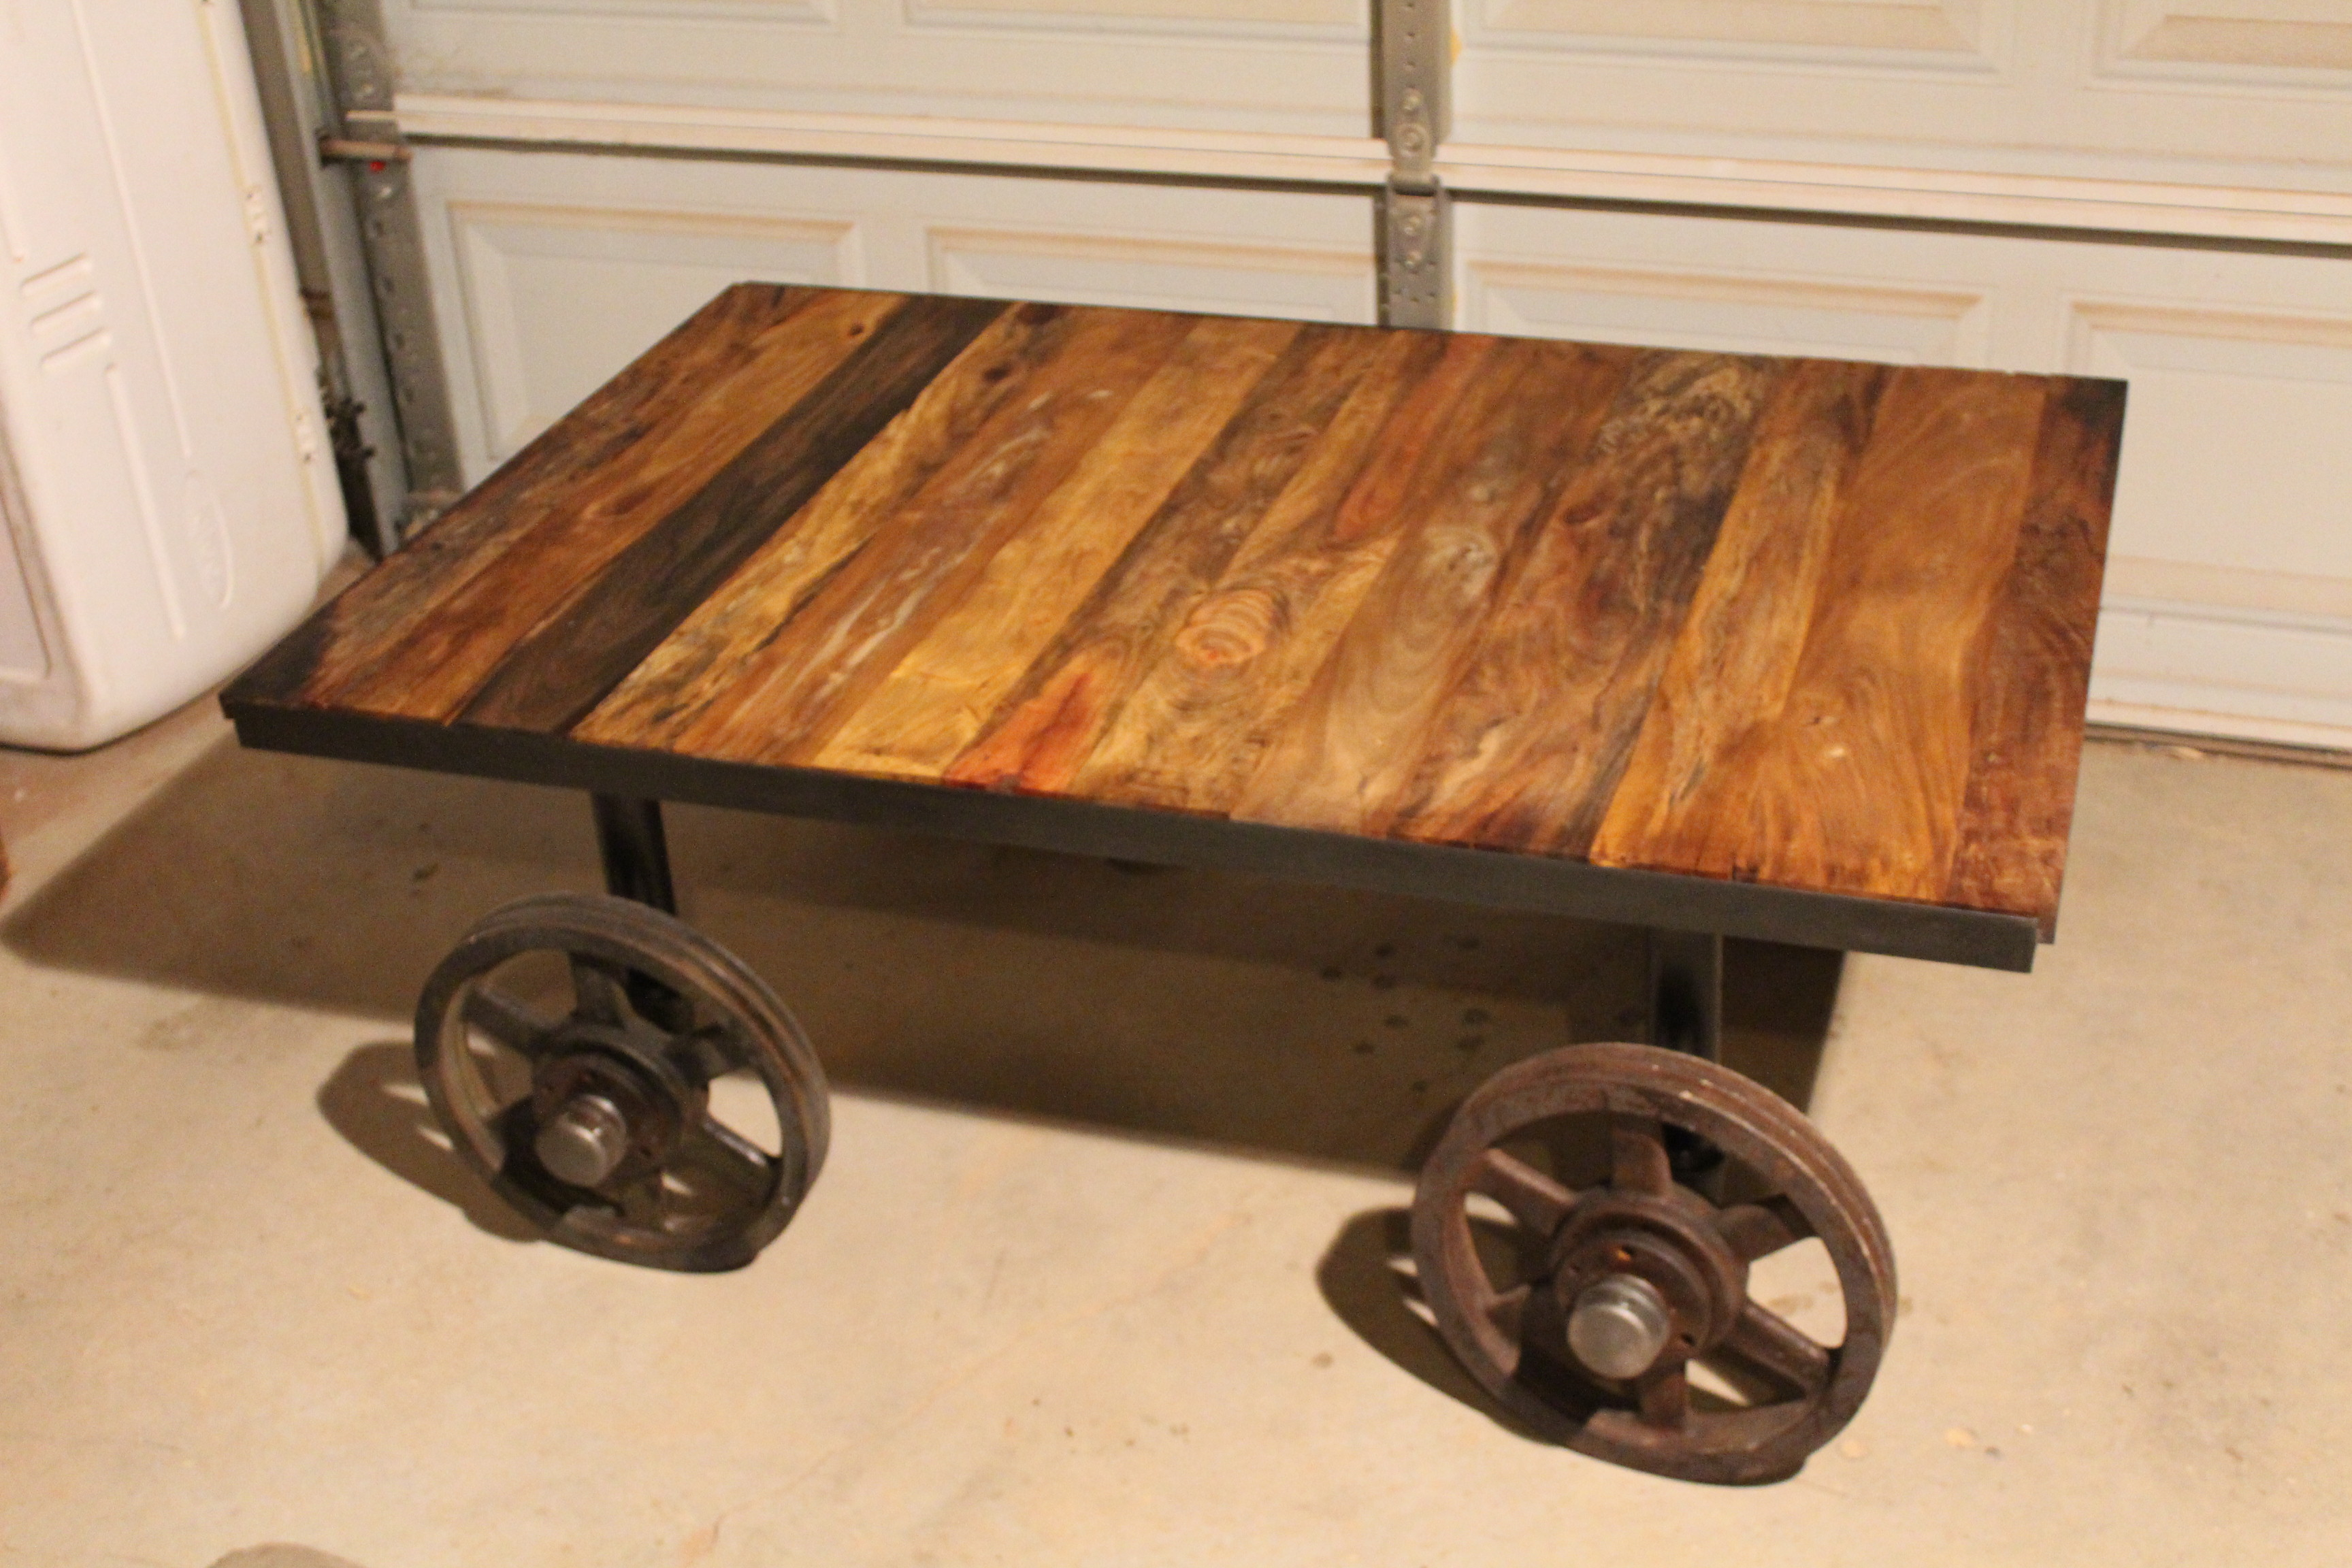 Railroad Car Look Coffee Table